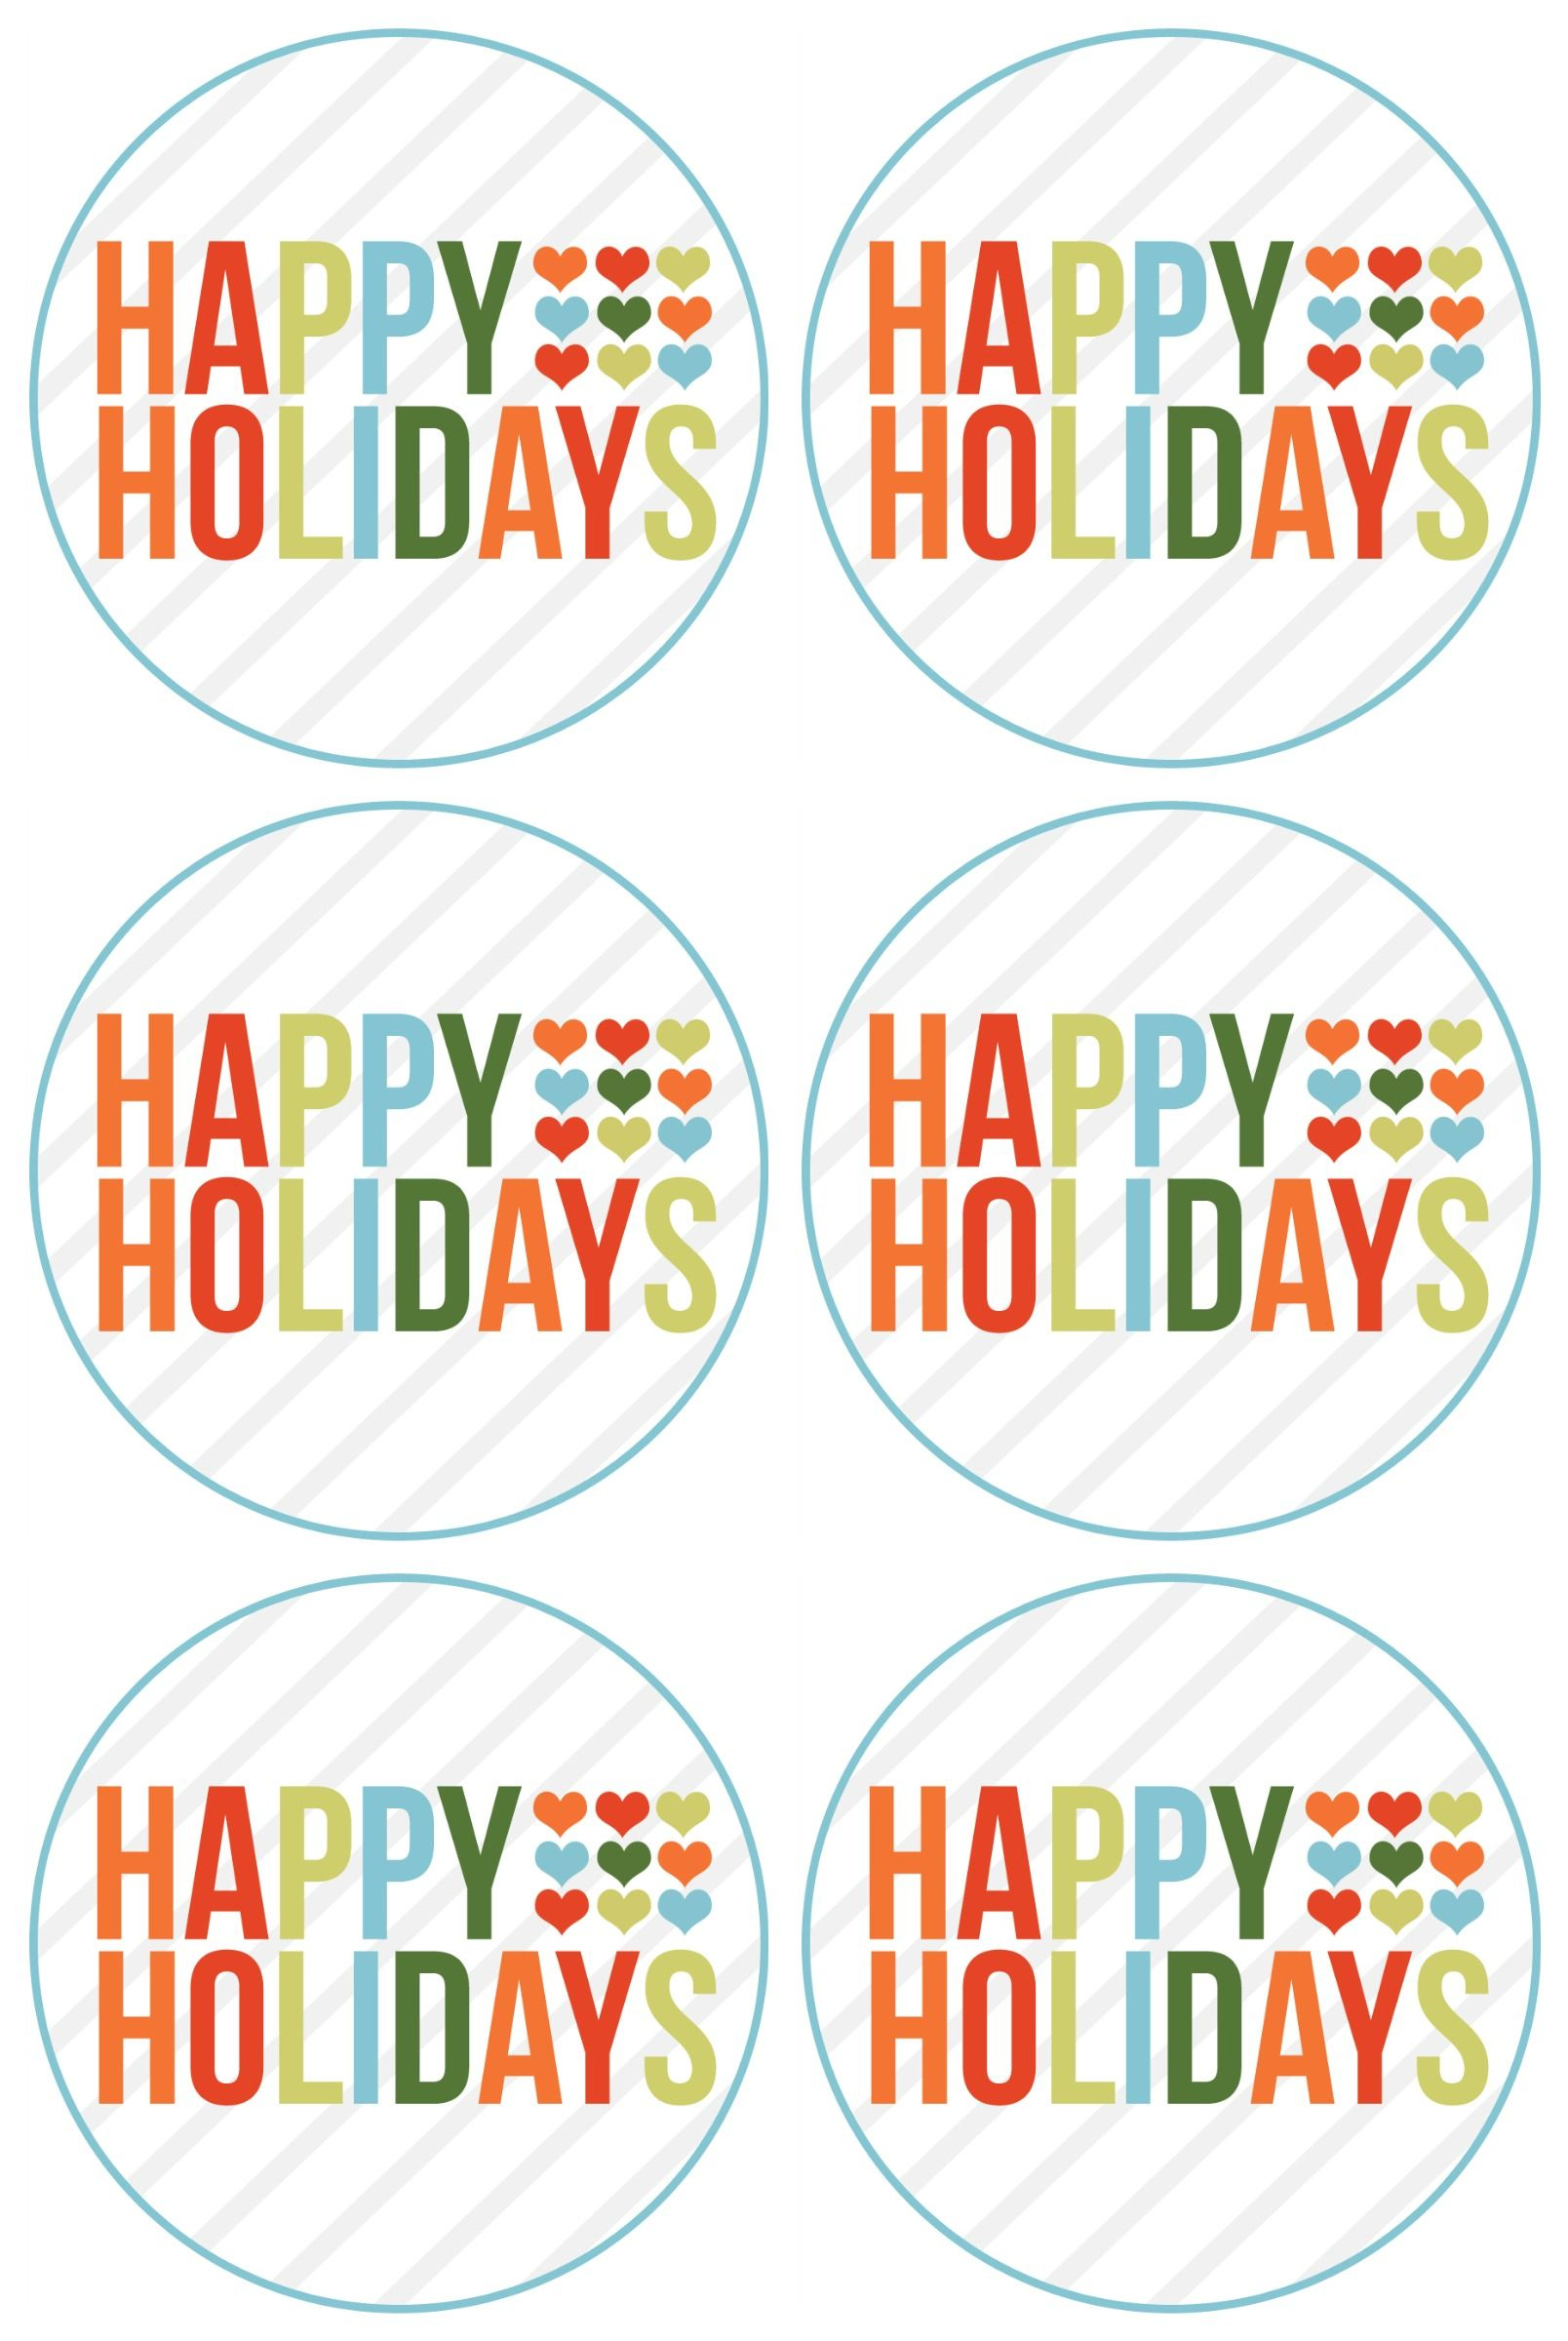 Happy Holidays Free Printable (Rejoin Happy Holidays And Merry - Free Printable Happy Holidays Gift Tags